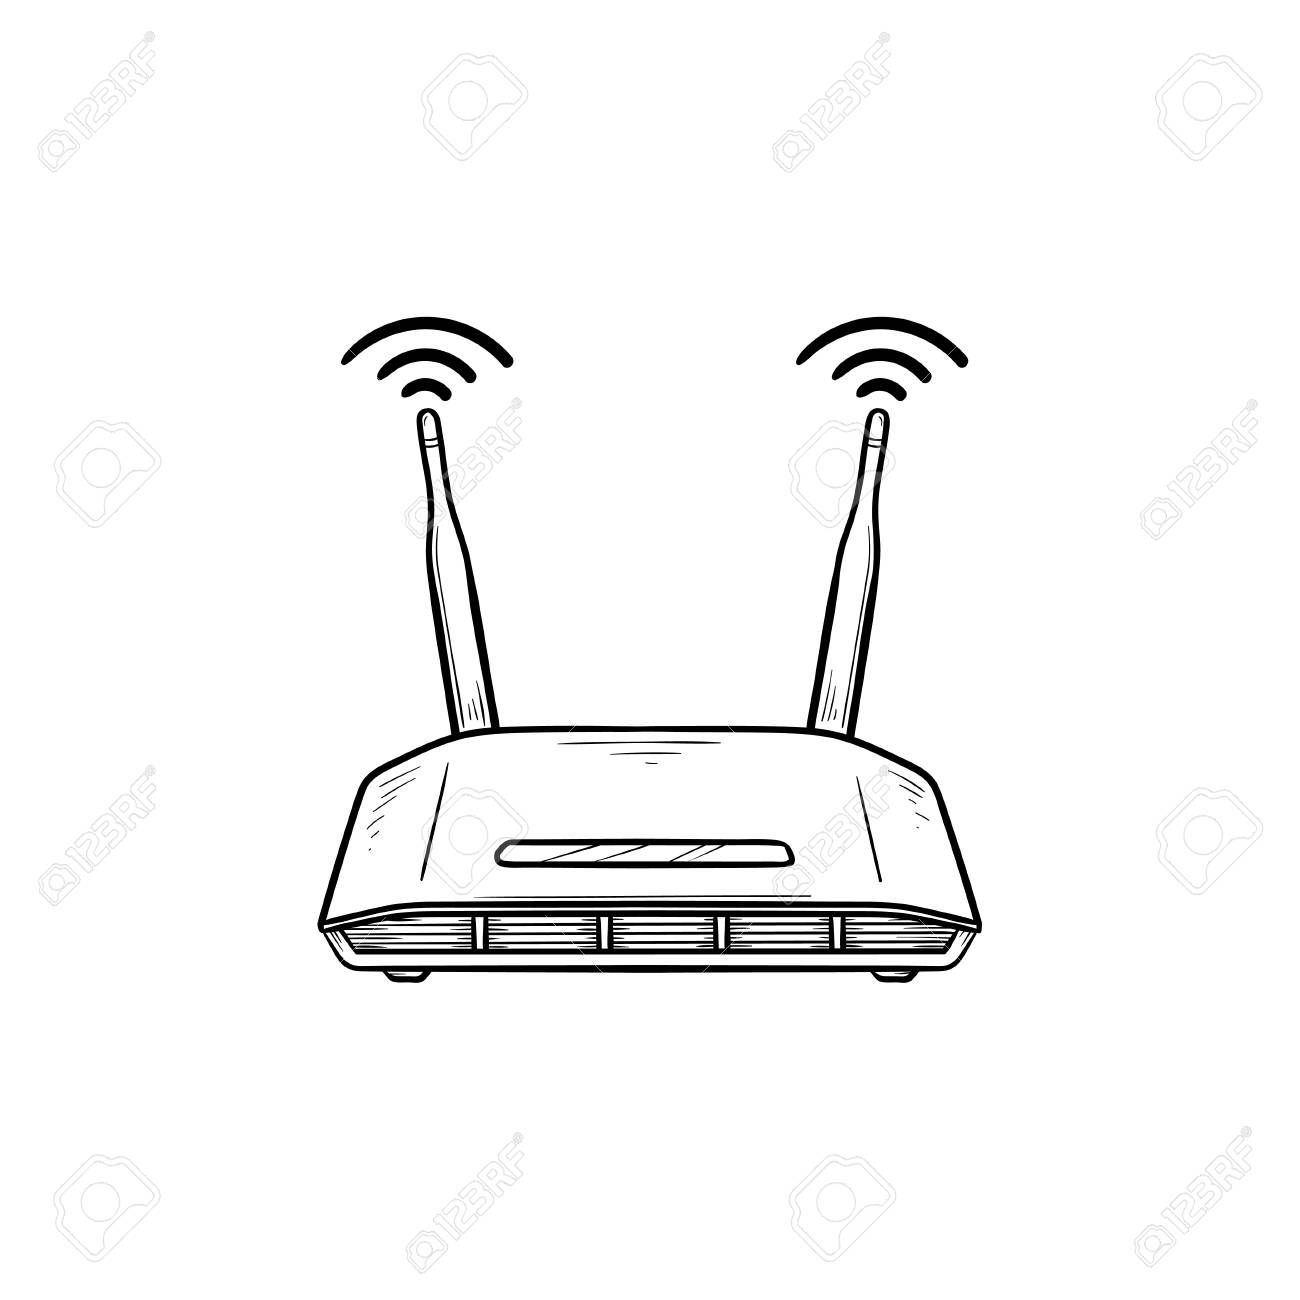 Wifi router hand drawn outline doodle icon  Internet technology,